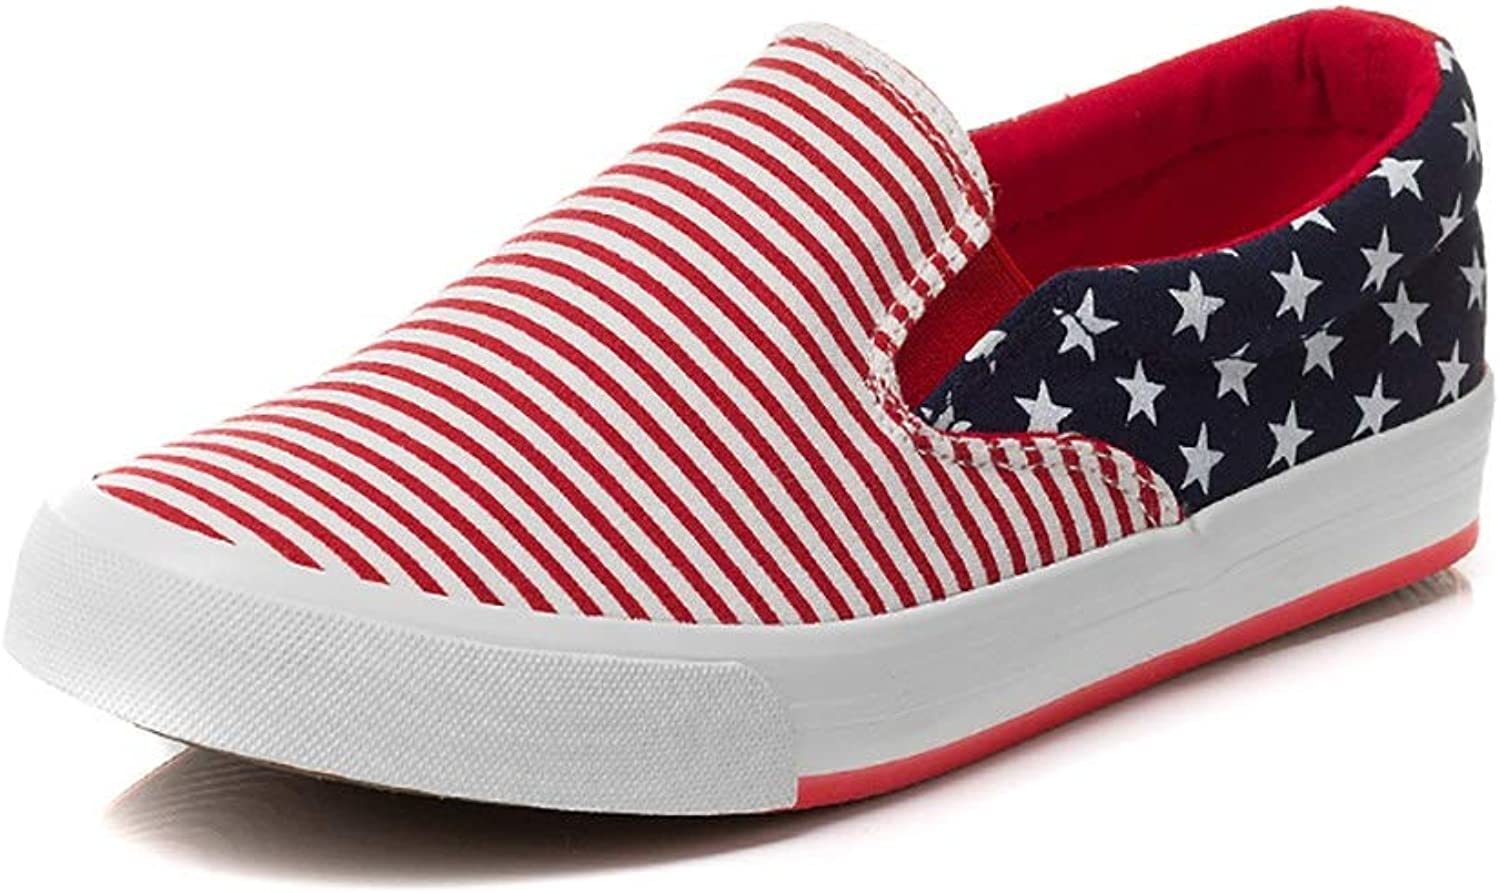 Canvas shoes Women's shoes Korean Version of The Single shoes Student Flat shoes Spring Lazy shoes Striped Casual a Pedal shoes (color   A, Size   37)